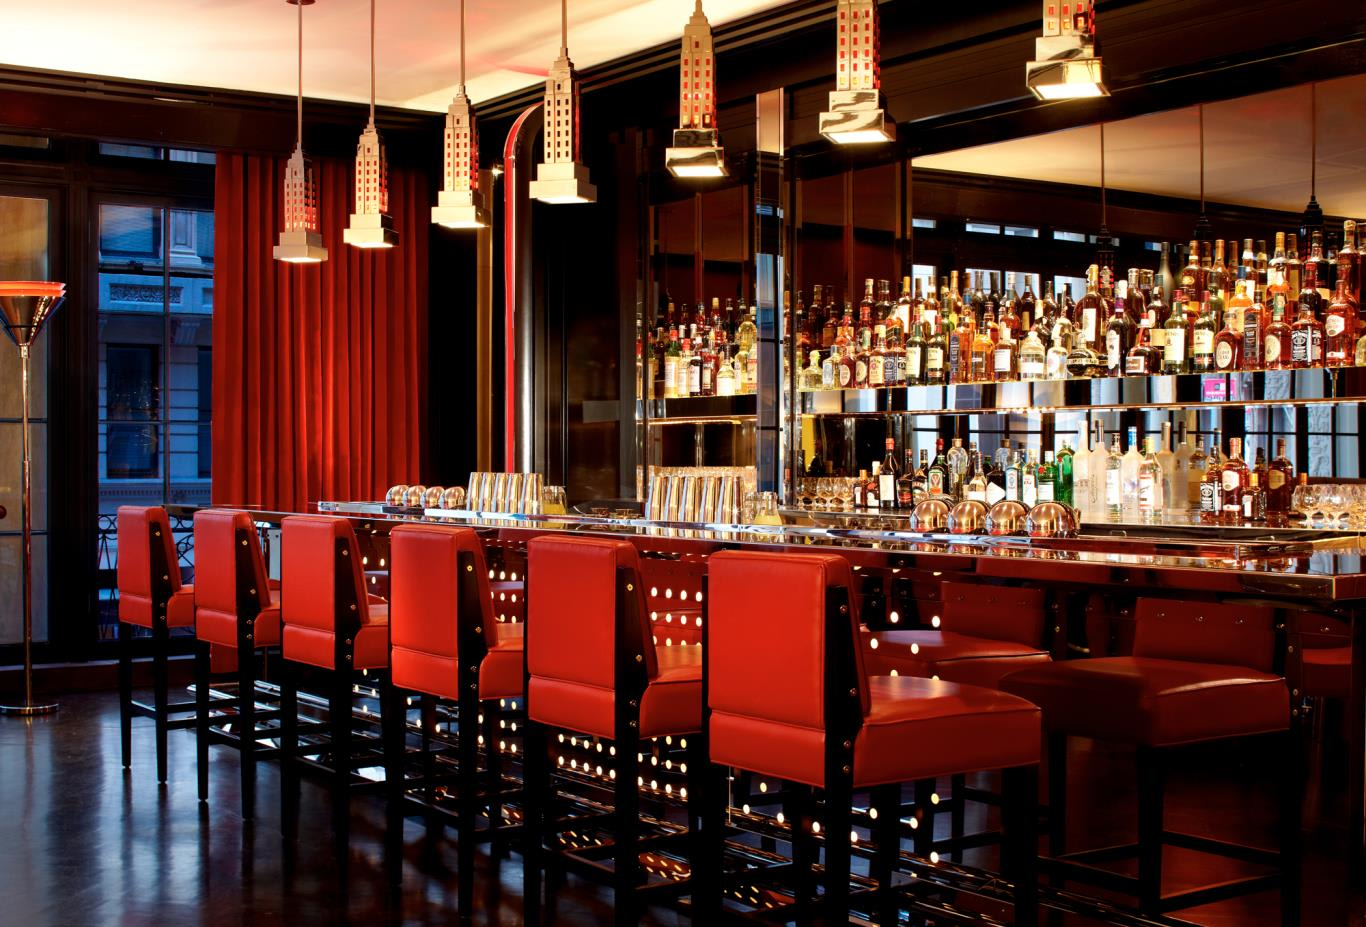 The Lambs Club Bar